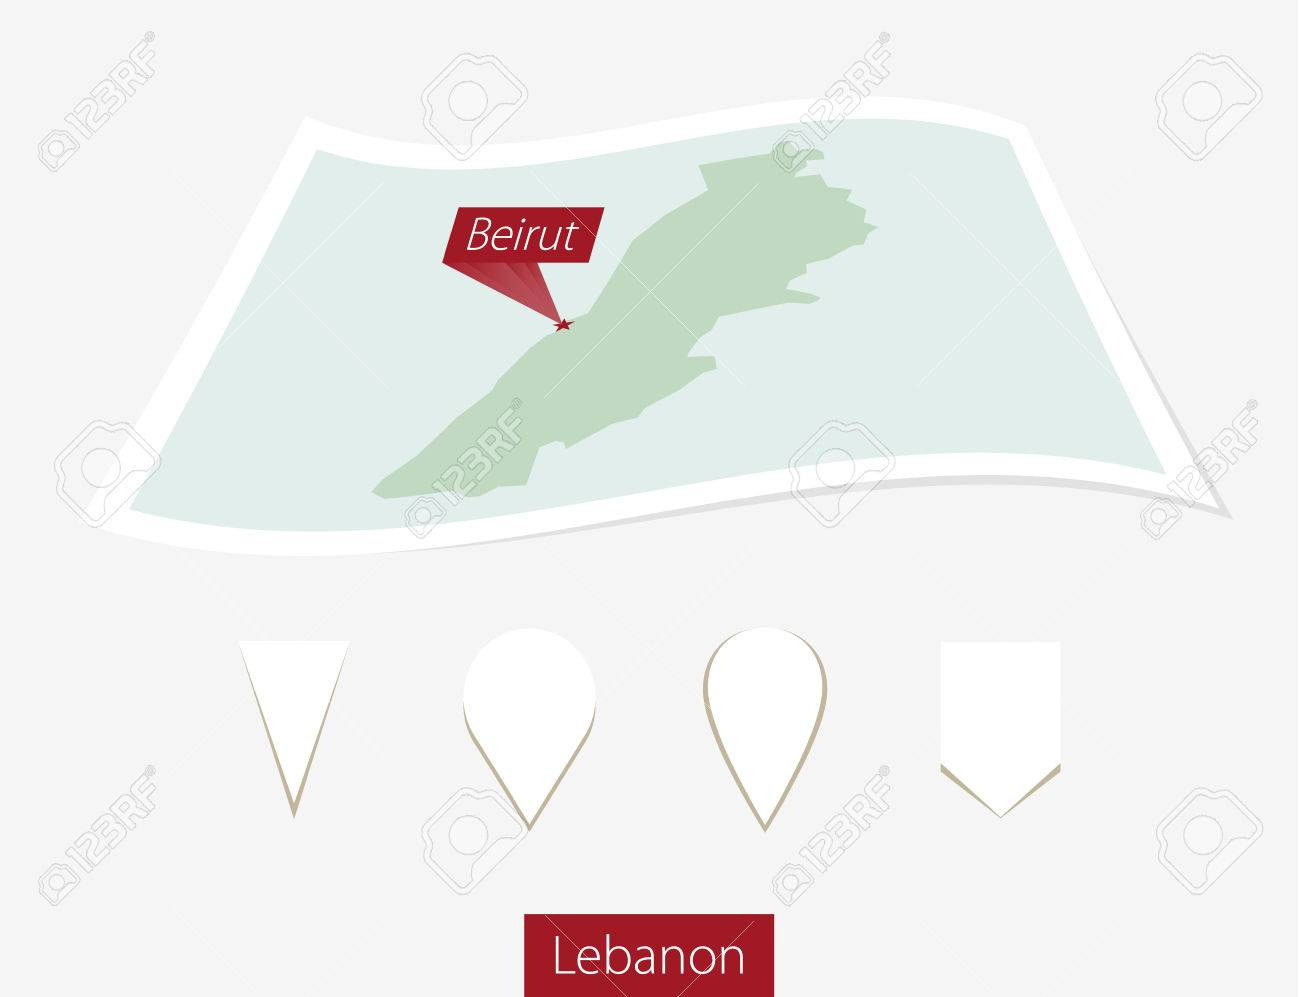 Curved Paper Map Of Lebanon With Capital Beirut On Gray Background on nicosia on map, doha on map, zagros mountains on map, cairo on map, baghdad on map, amman on map, west bank on map, kabul on map, muscat on map, tel aviv on map, damascus on map, manama on map, middle east map, riyadh on map, istanbul on map, tehran on map, sanaa on map, dubai on map, lebanon on map, harare on map,